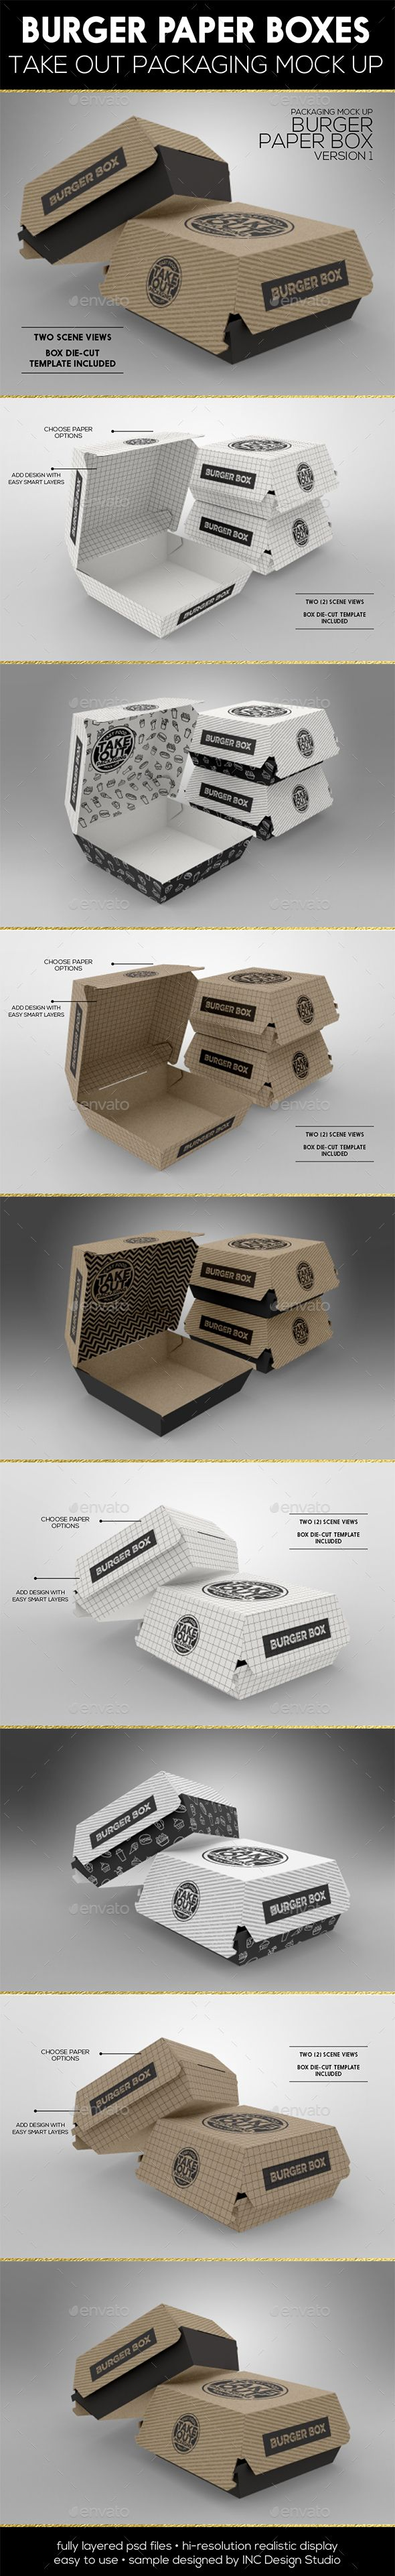 Burger Box Packaging Mock Up by incybautista Burger Box v.1 Packaging Mock UpHigh quality Burger Box Paper Box packaging mock up High resolution PSD Mock Up Choose Paper Mate